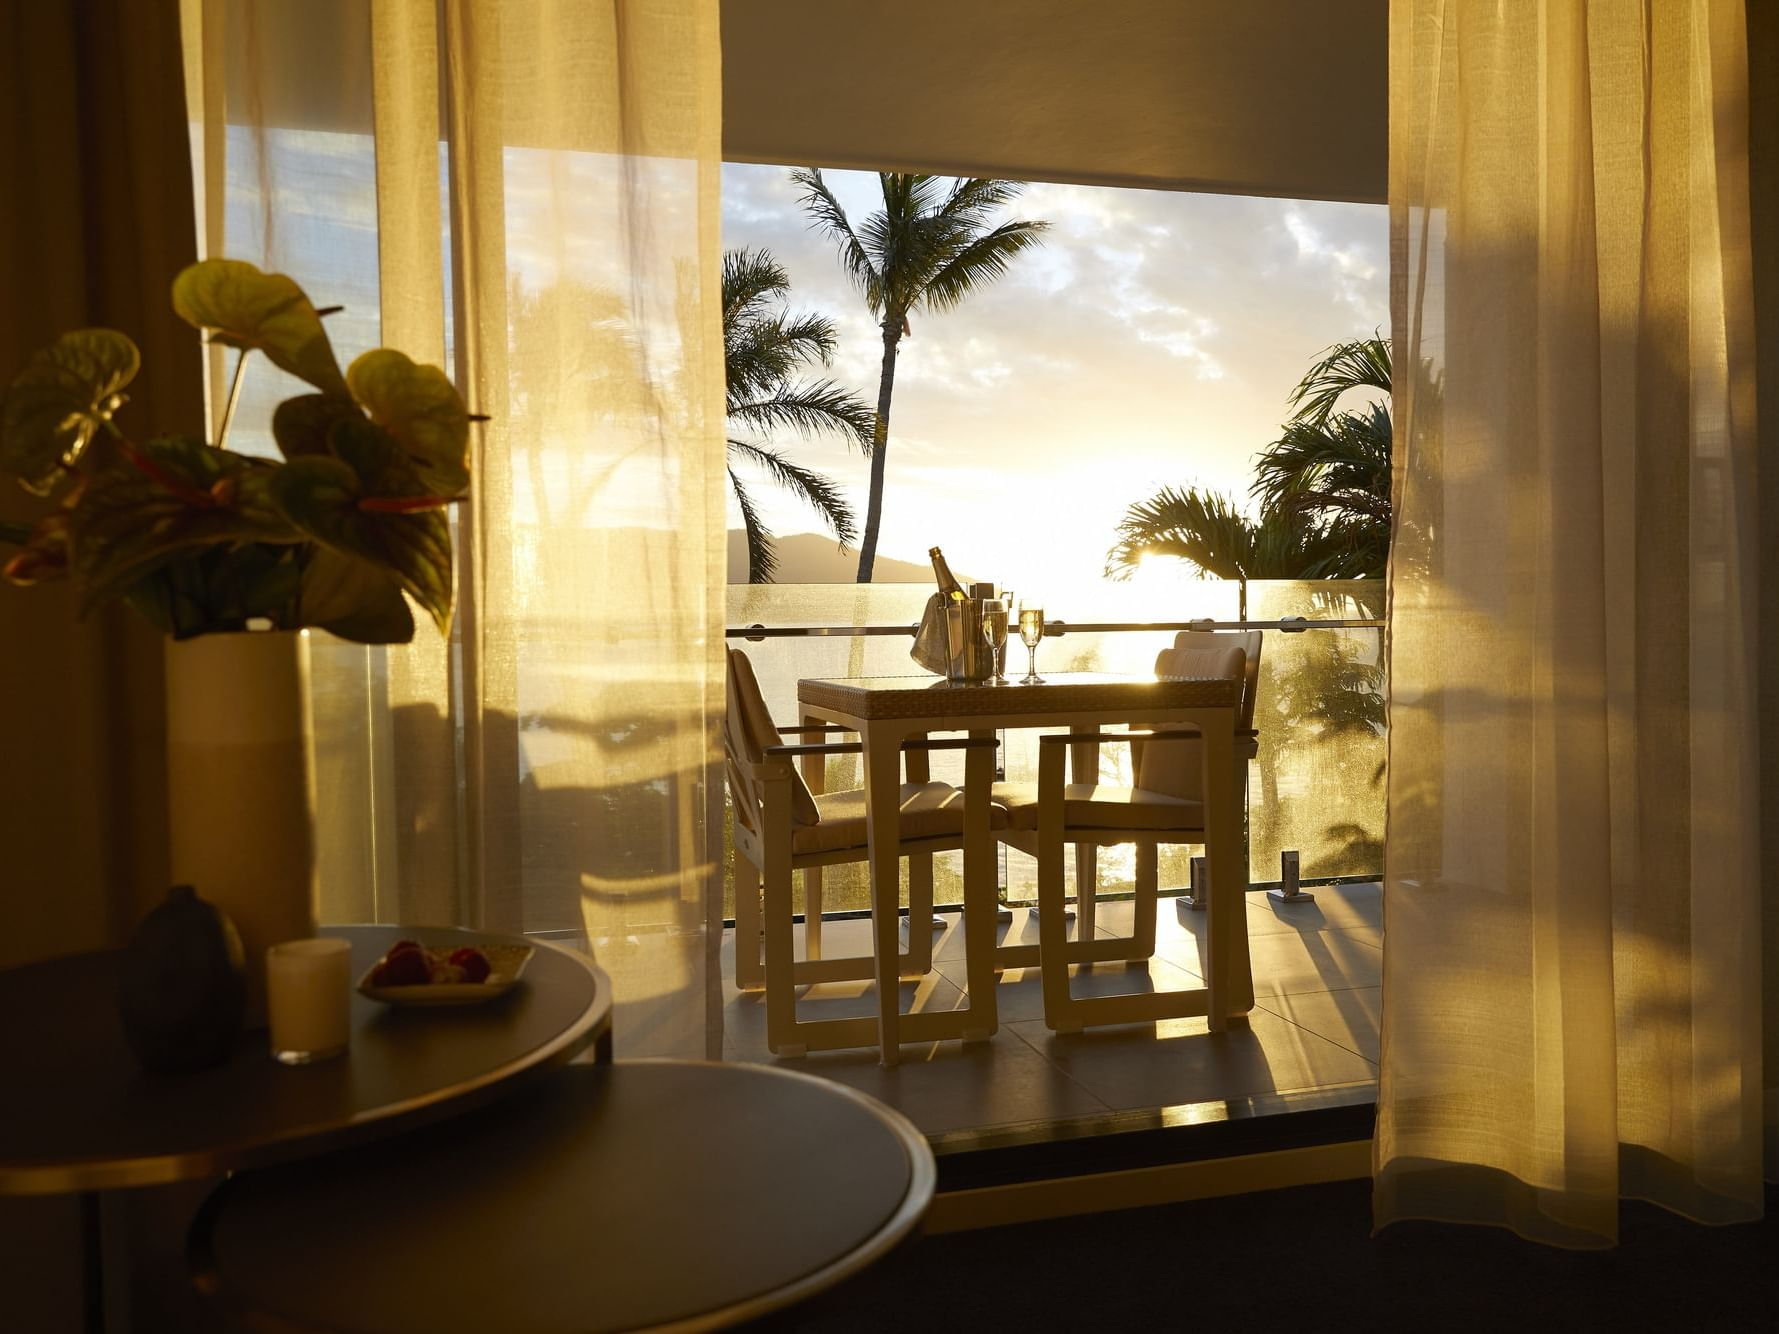 Sunset from Serenity room terrace at Daydream Island Resort